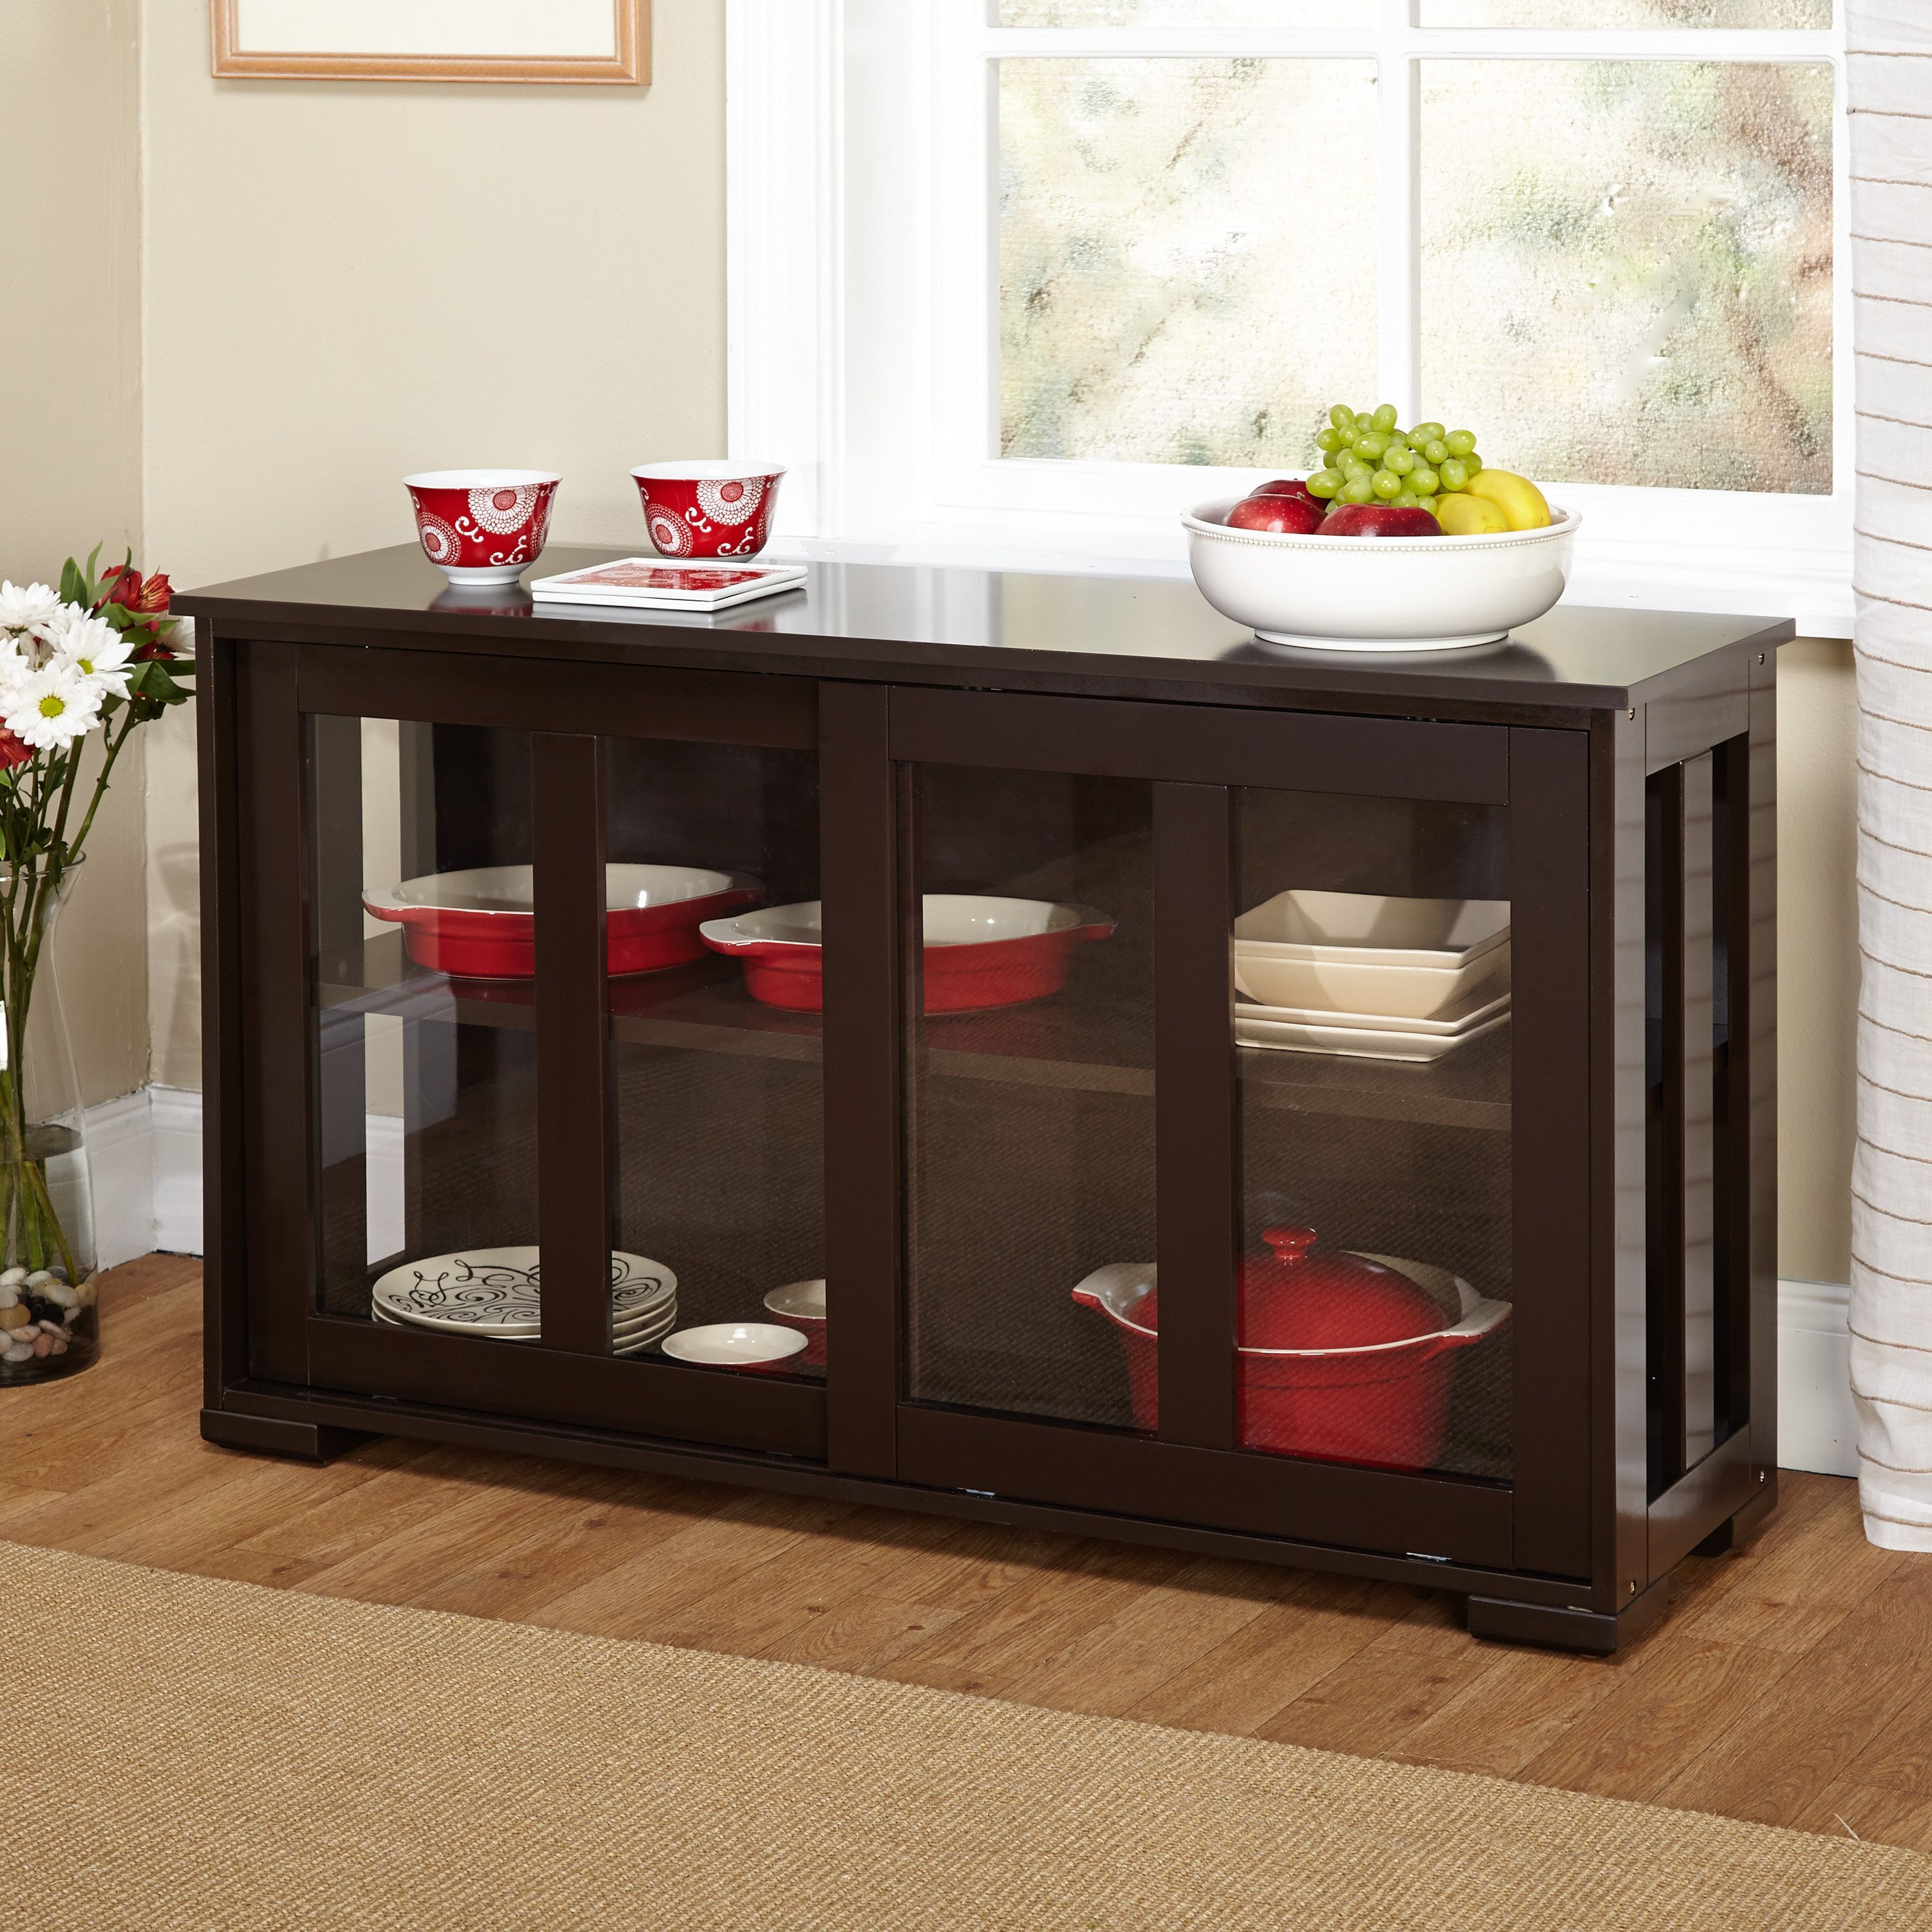 Blending Traditional And Modern Designs This Stackable Cabinet Features See Through Tempered Glass Doors